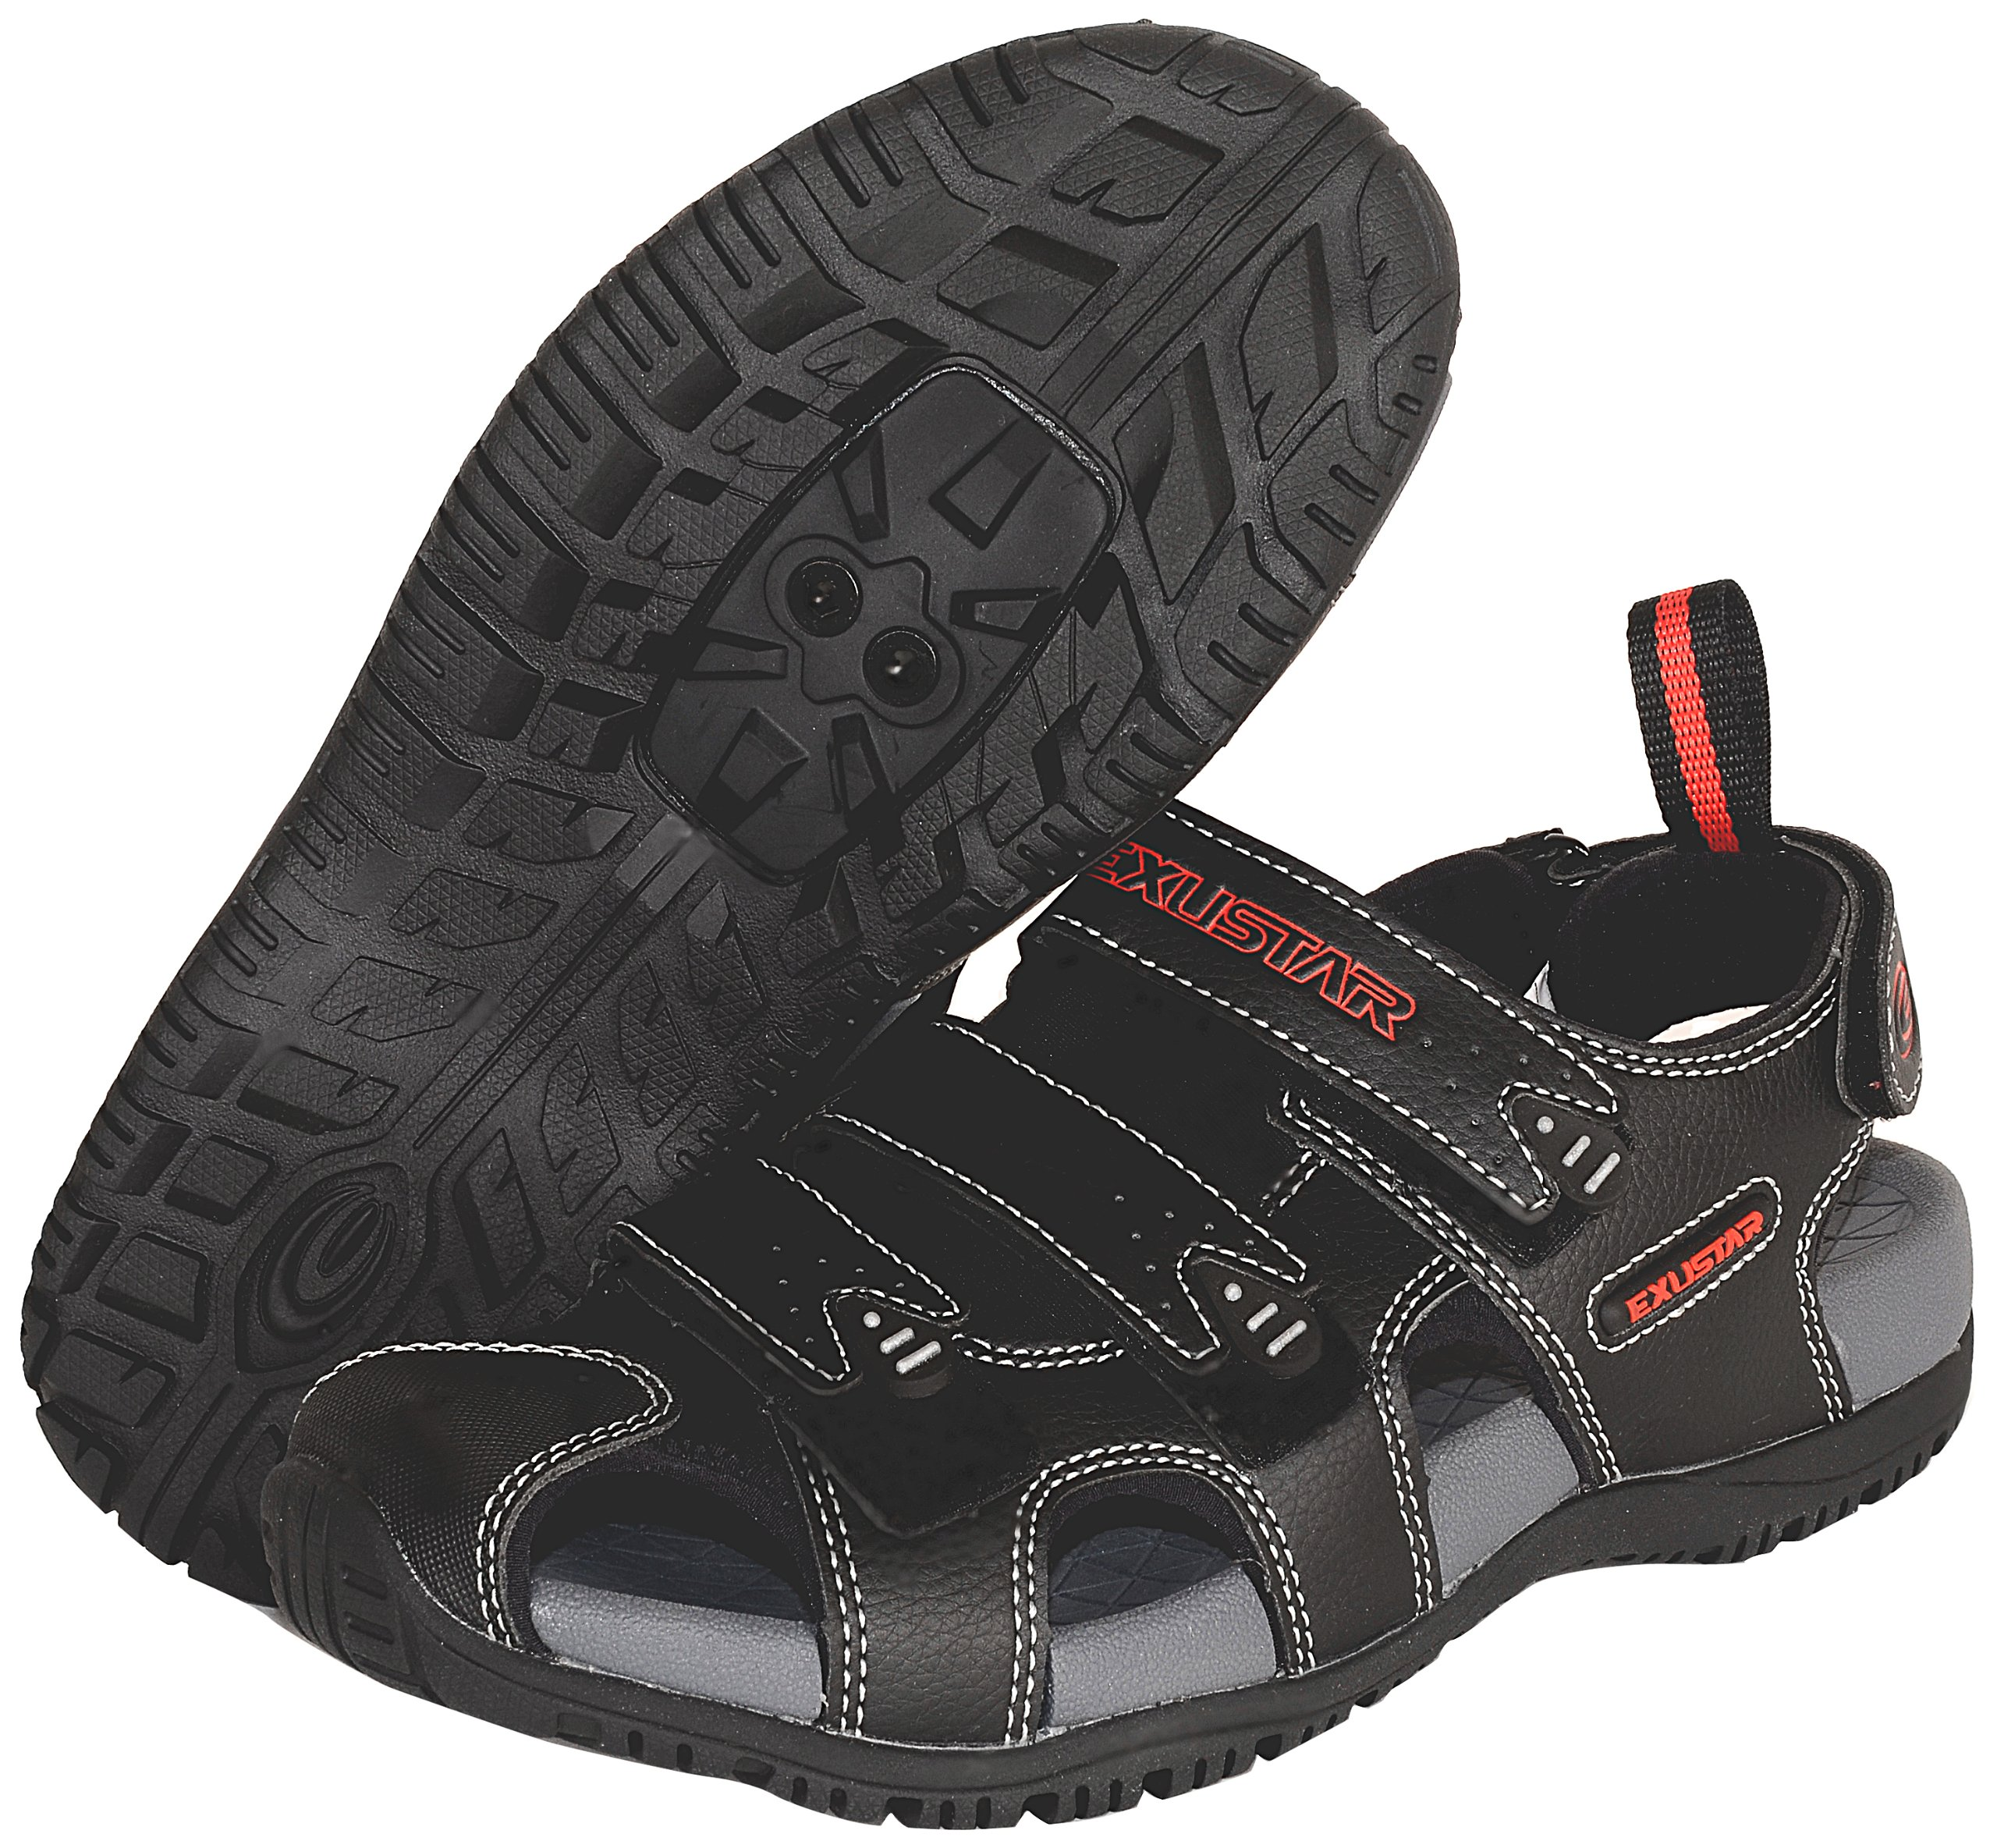 Exustar E-SS503 Bike Sandal, Black, 37/38 Euro or 5-6 US by Exustar